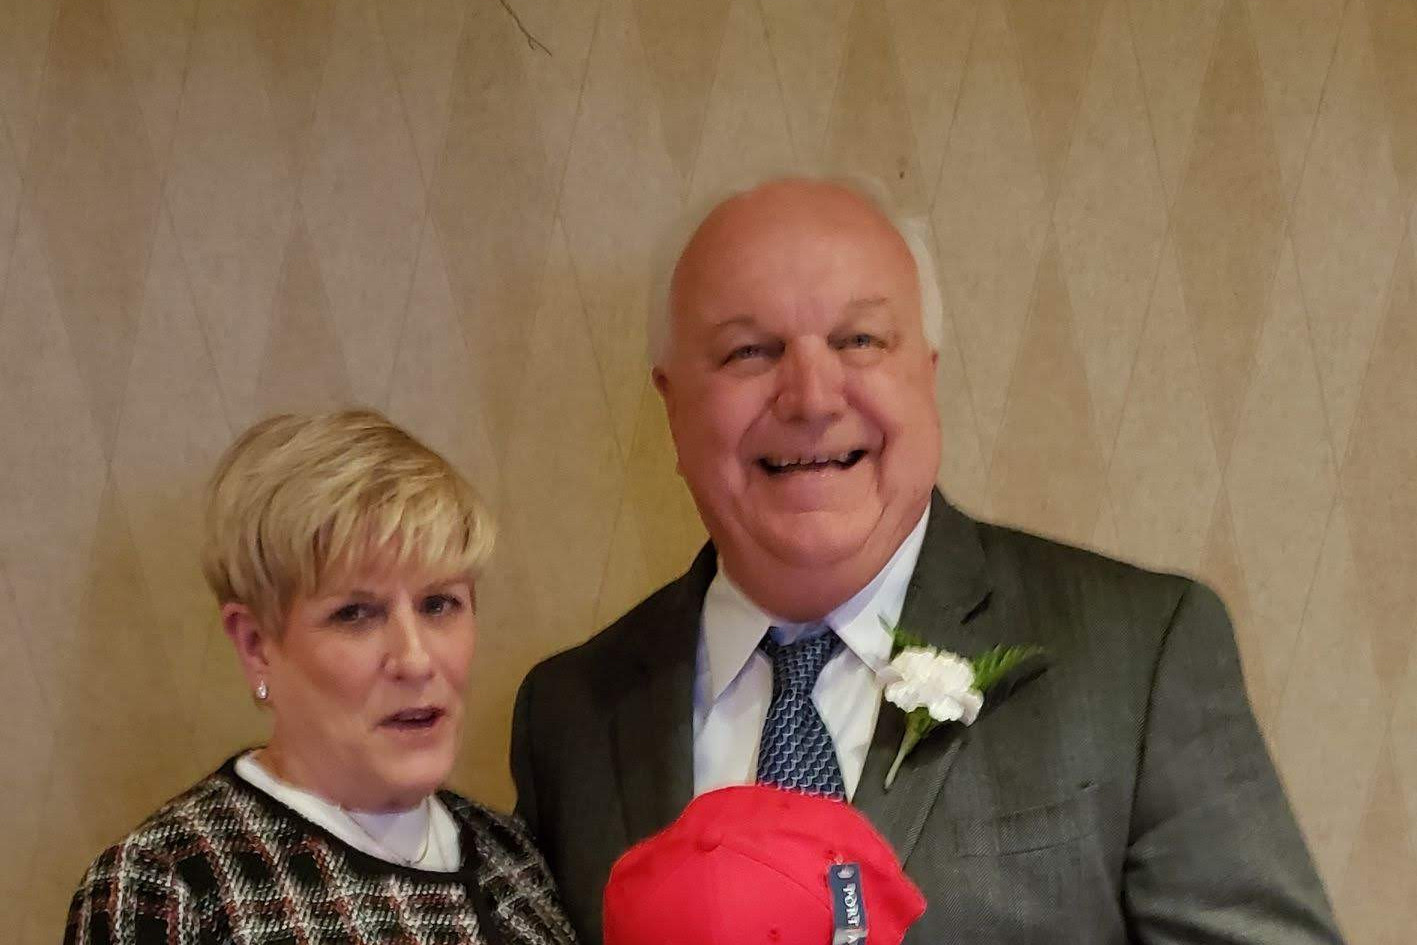 Bob Kramer with his wife Pat holding the hat of his high school alma mater, Central Catholic High School.  (photo by Anna Mastrolillo)